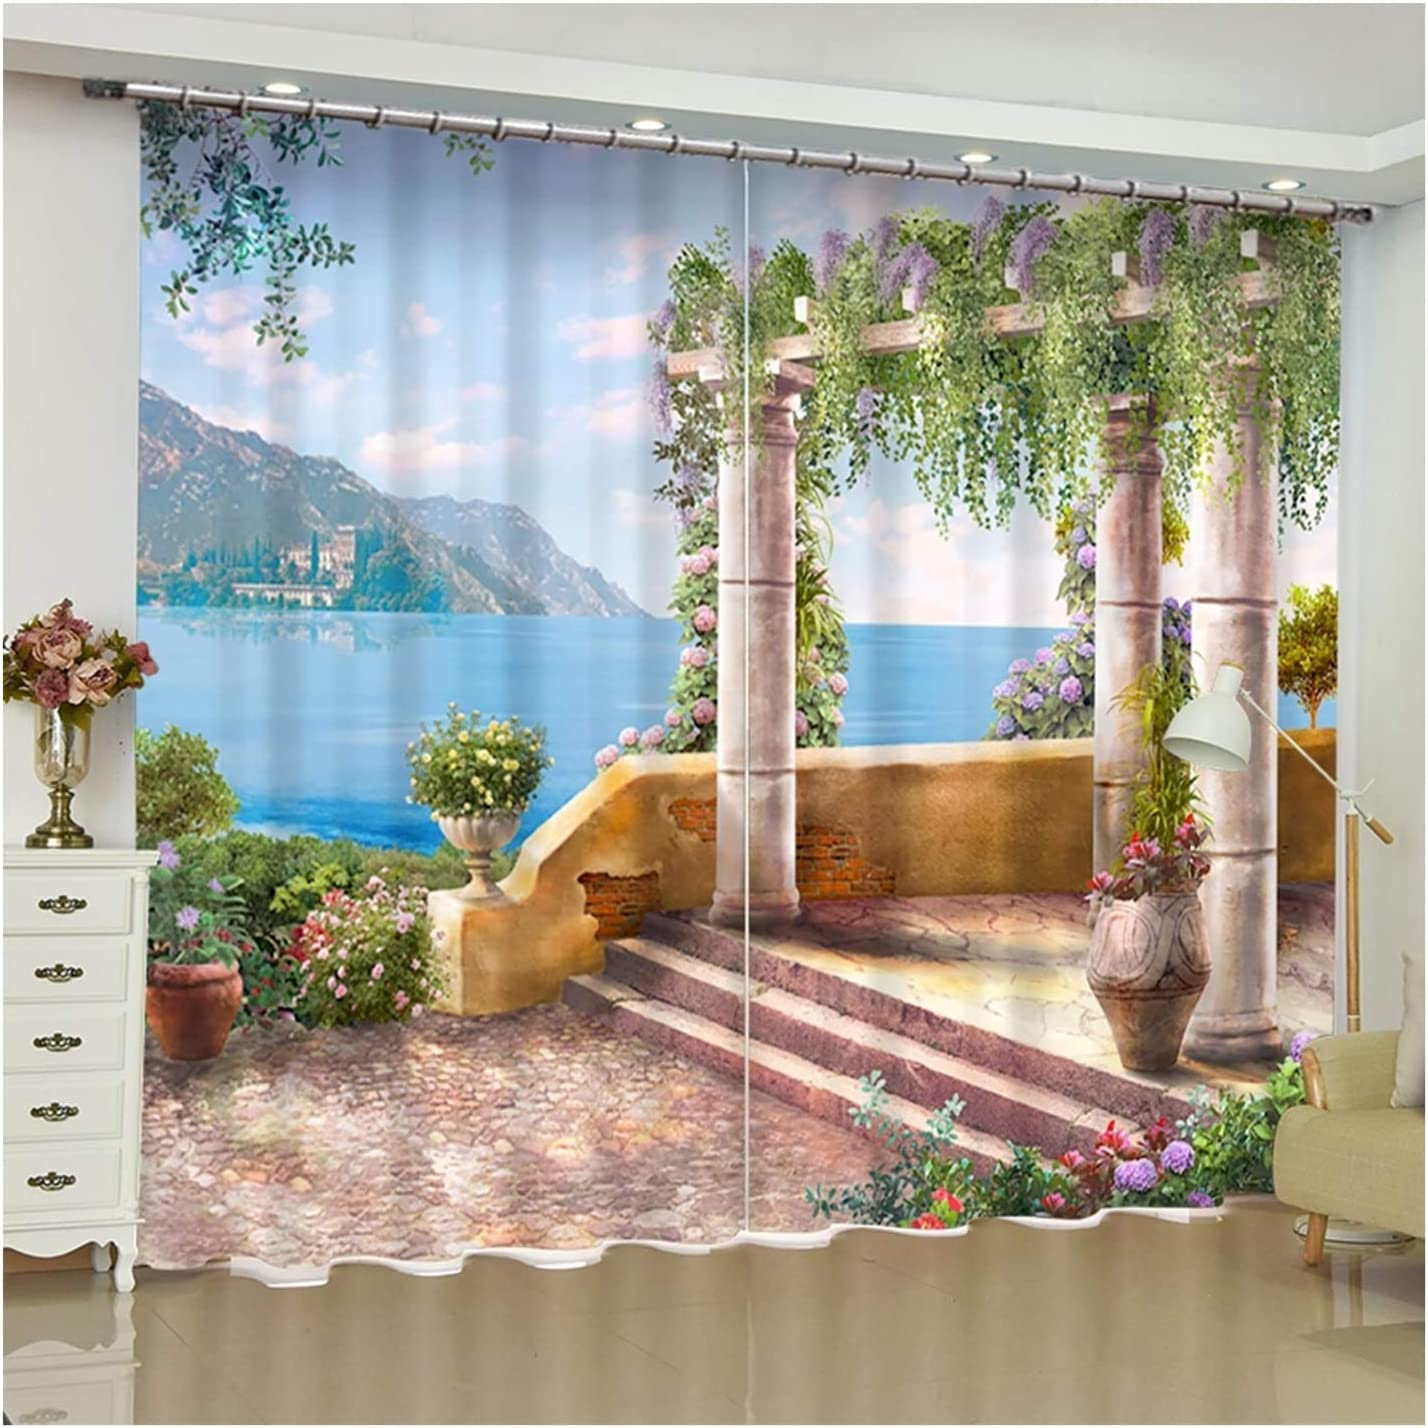 Daesar Curtains for Windows Bedroom 2 Pan Blackout Credence Tulsa Mall